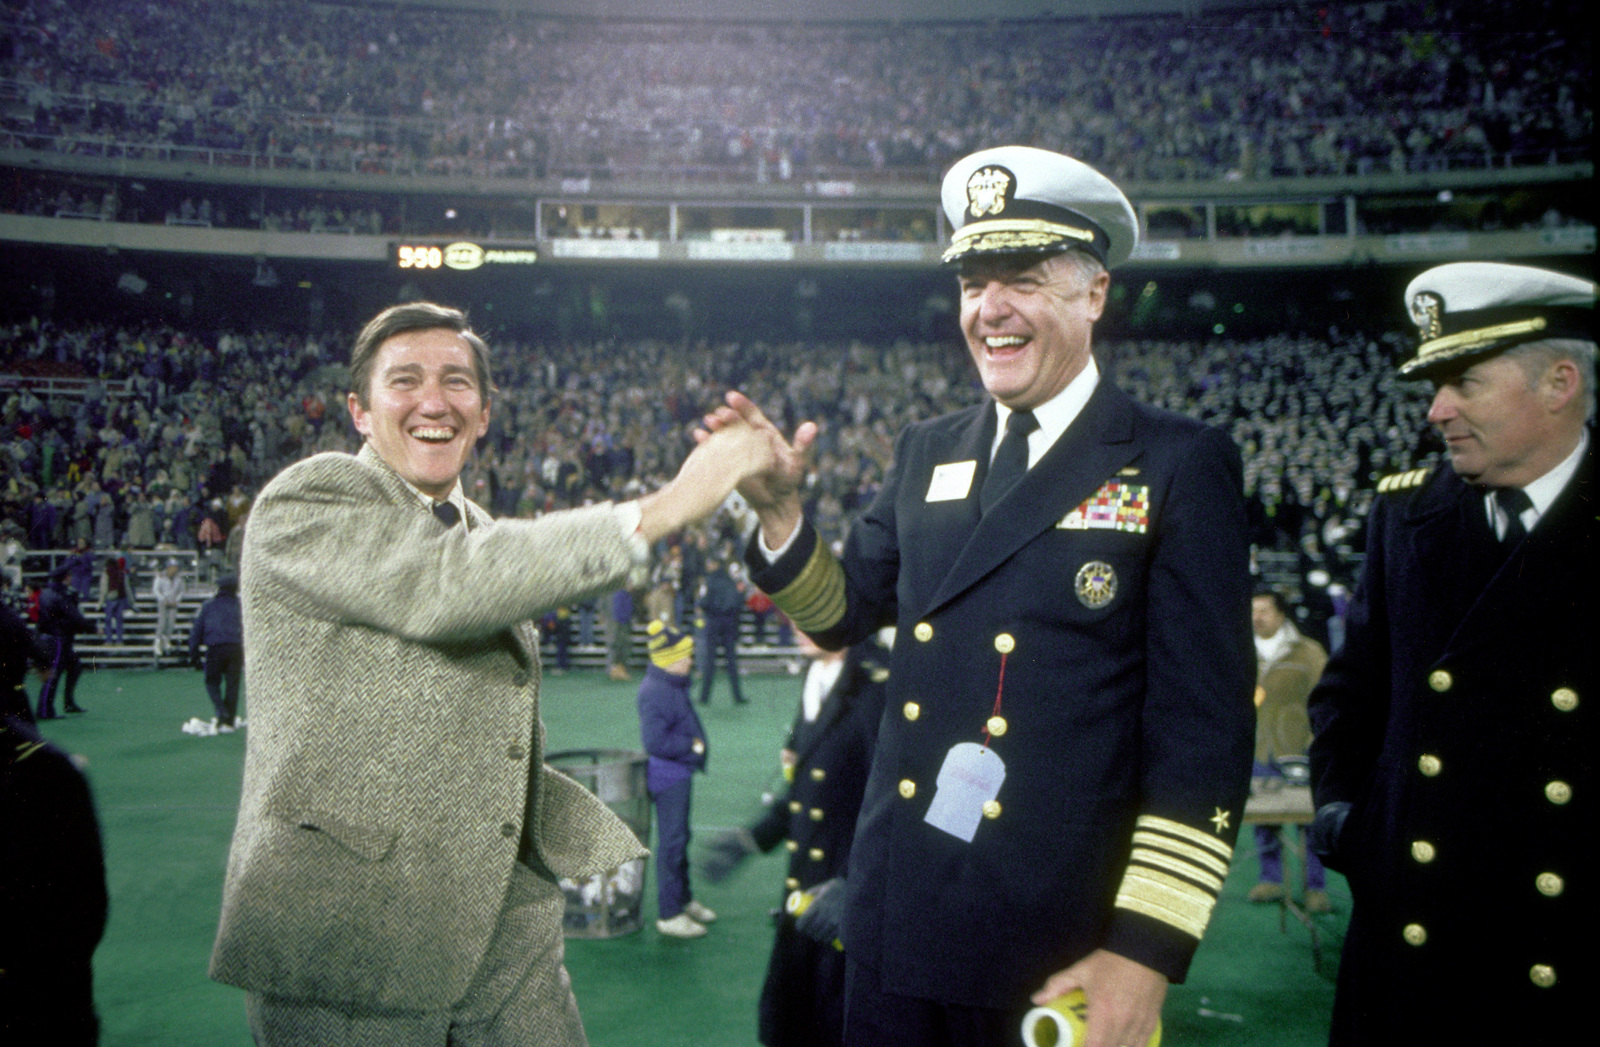 Secretary of the Navy John F. Lehman Jr. congratulates Adm. James D. Watkins, chief naval operations, after the U.S. Naval Academy's 17-7 football victory over Army